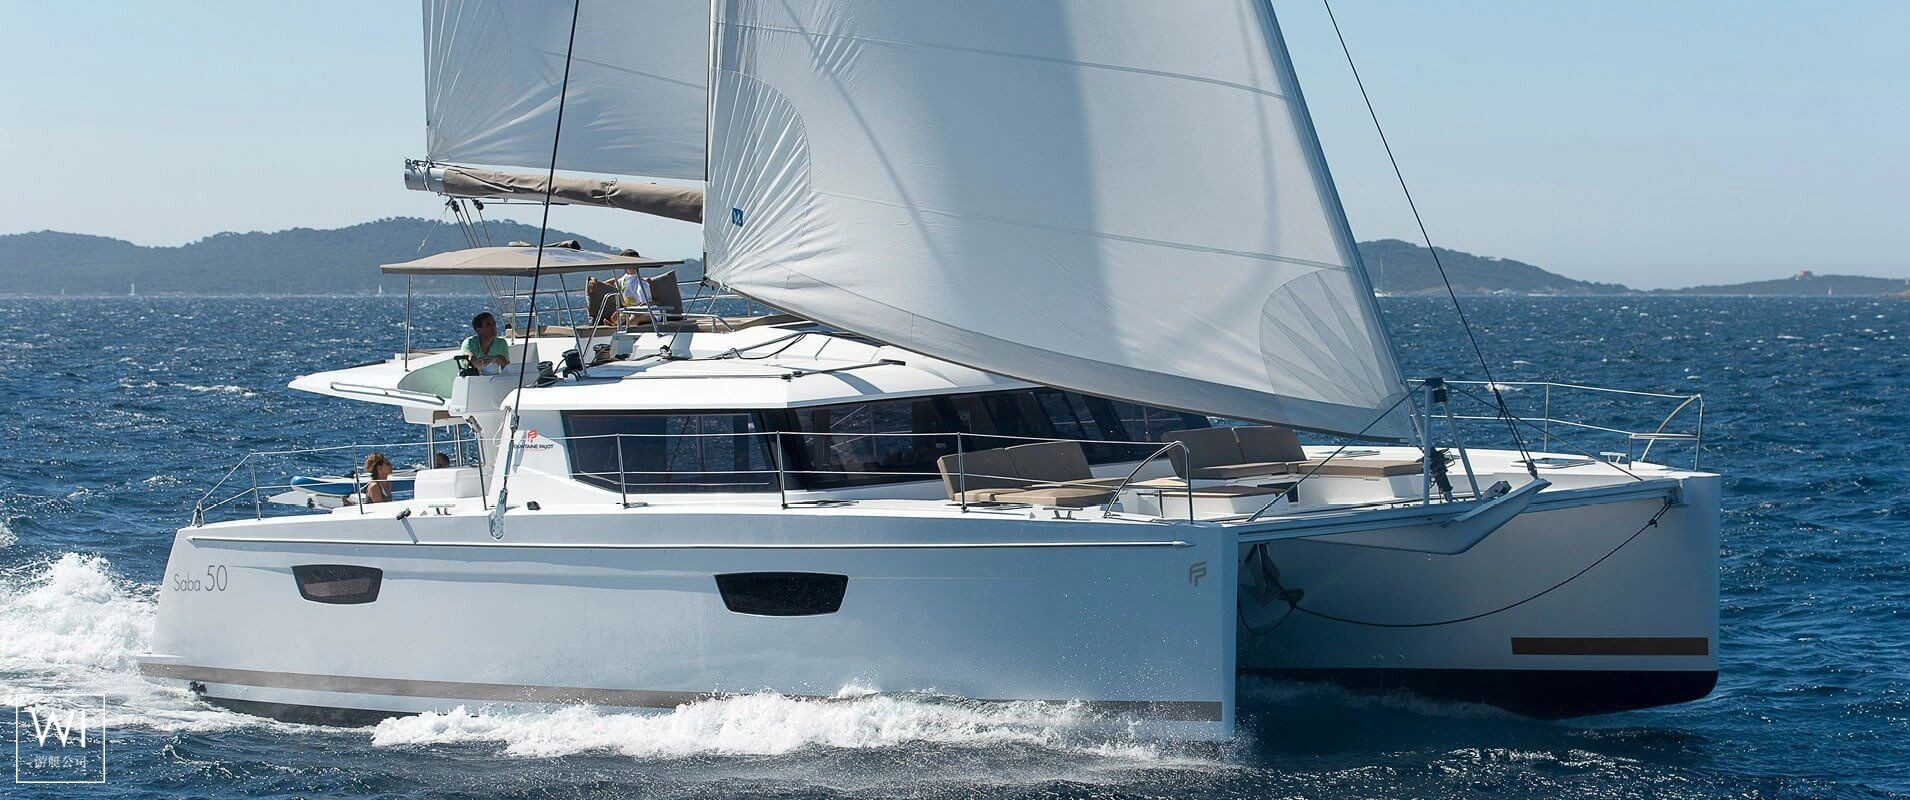 Saba 50 with watermaker & A/C Exterior 1